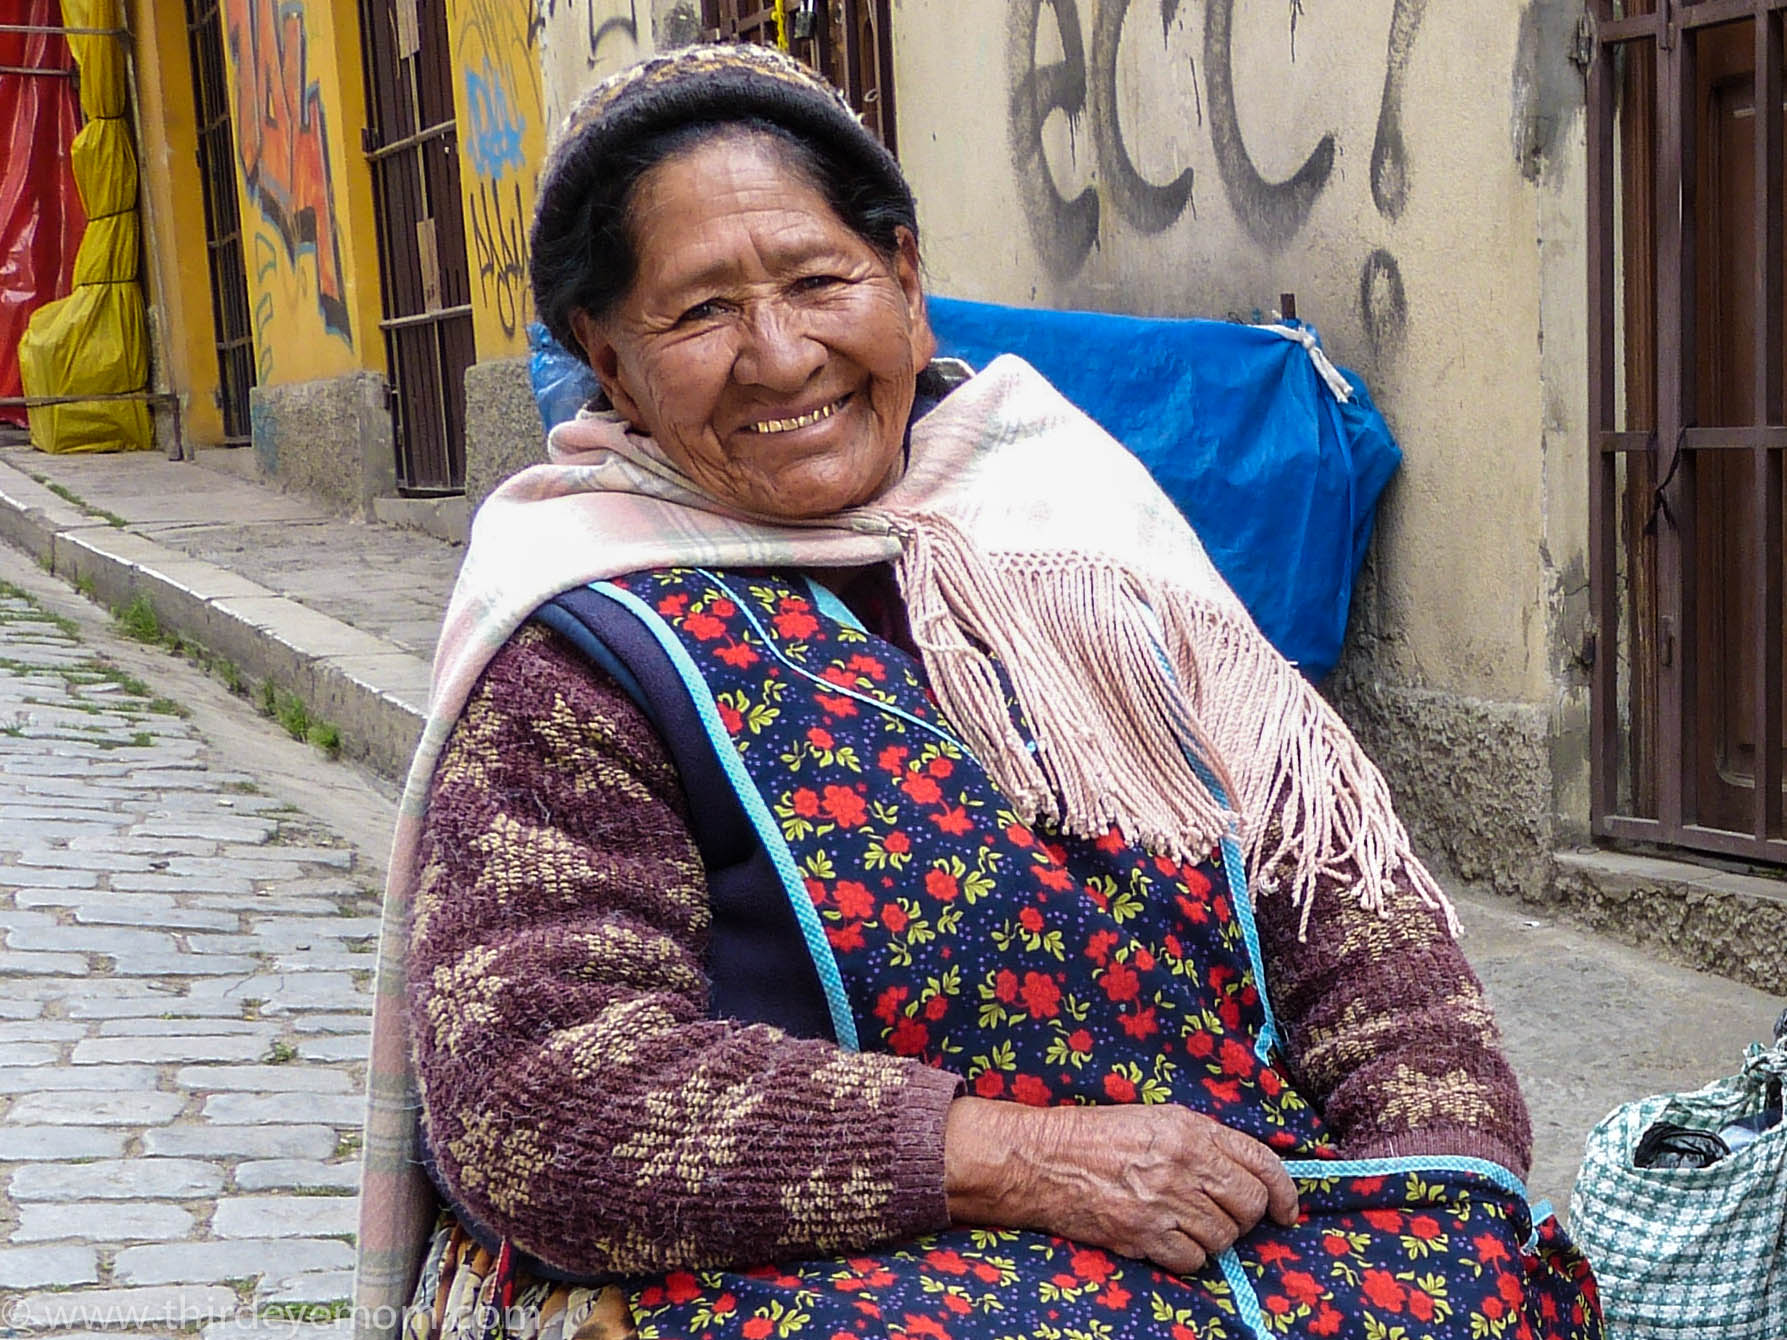 The Aymara Women of La Paz | Thirdeyemom